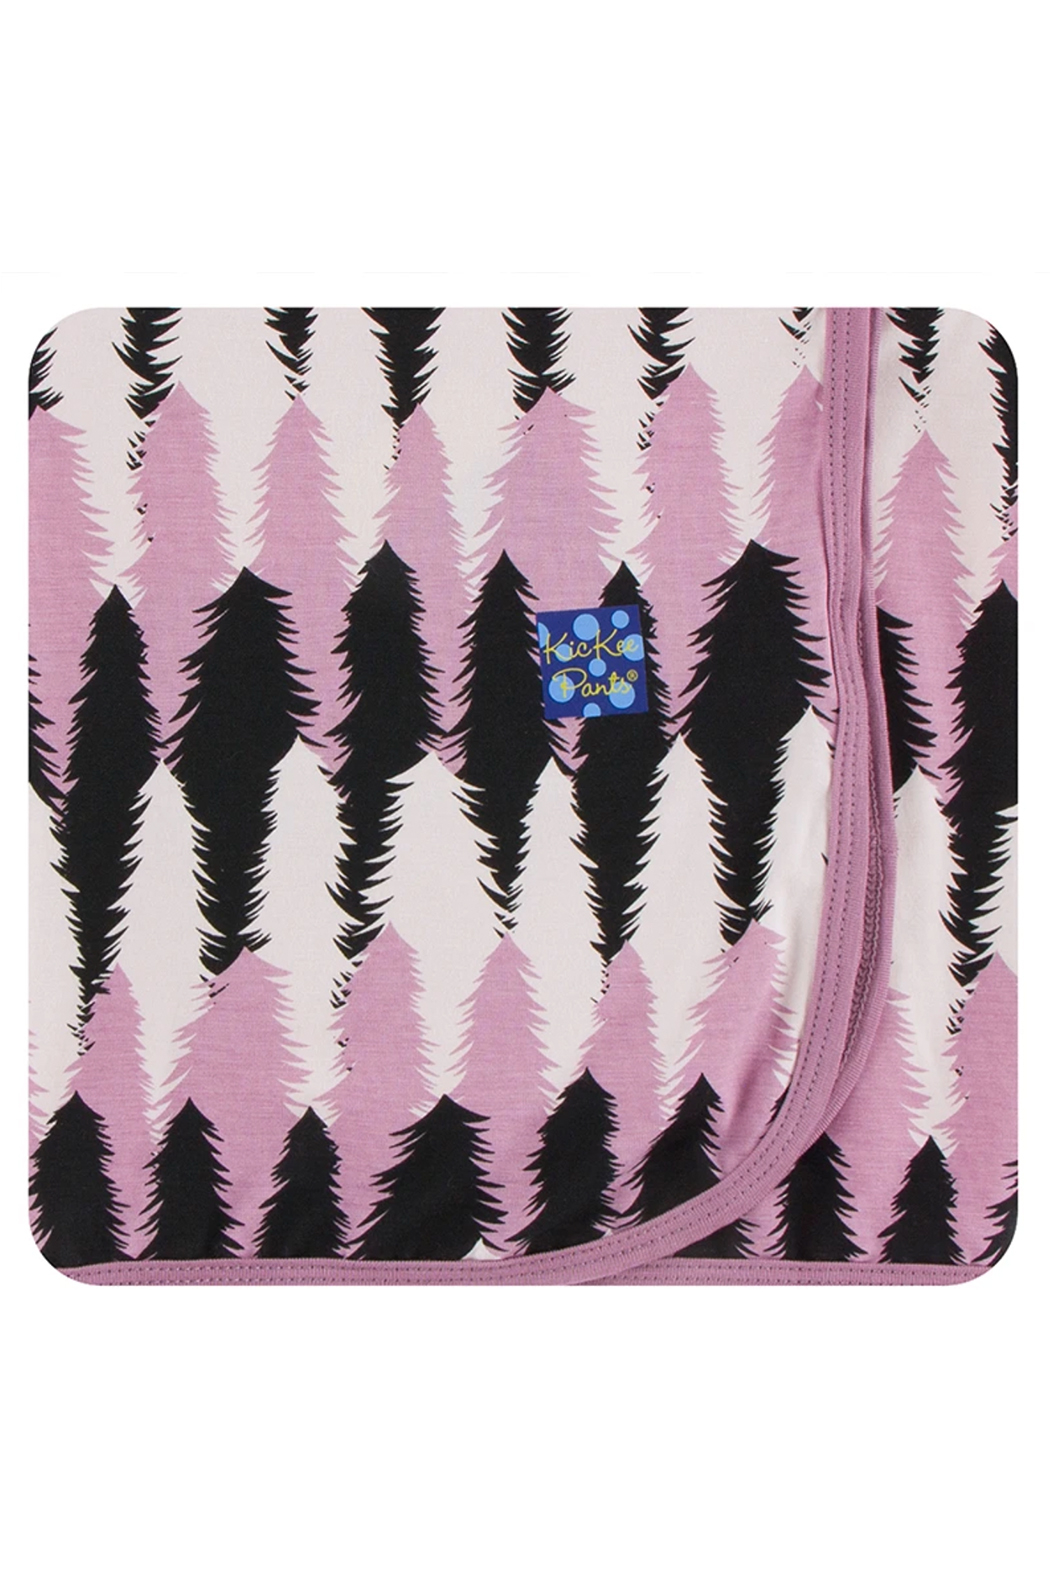 Kickee Pants Swaddle Blanket - Midnight Forestry - Main Image